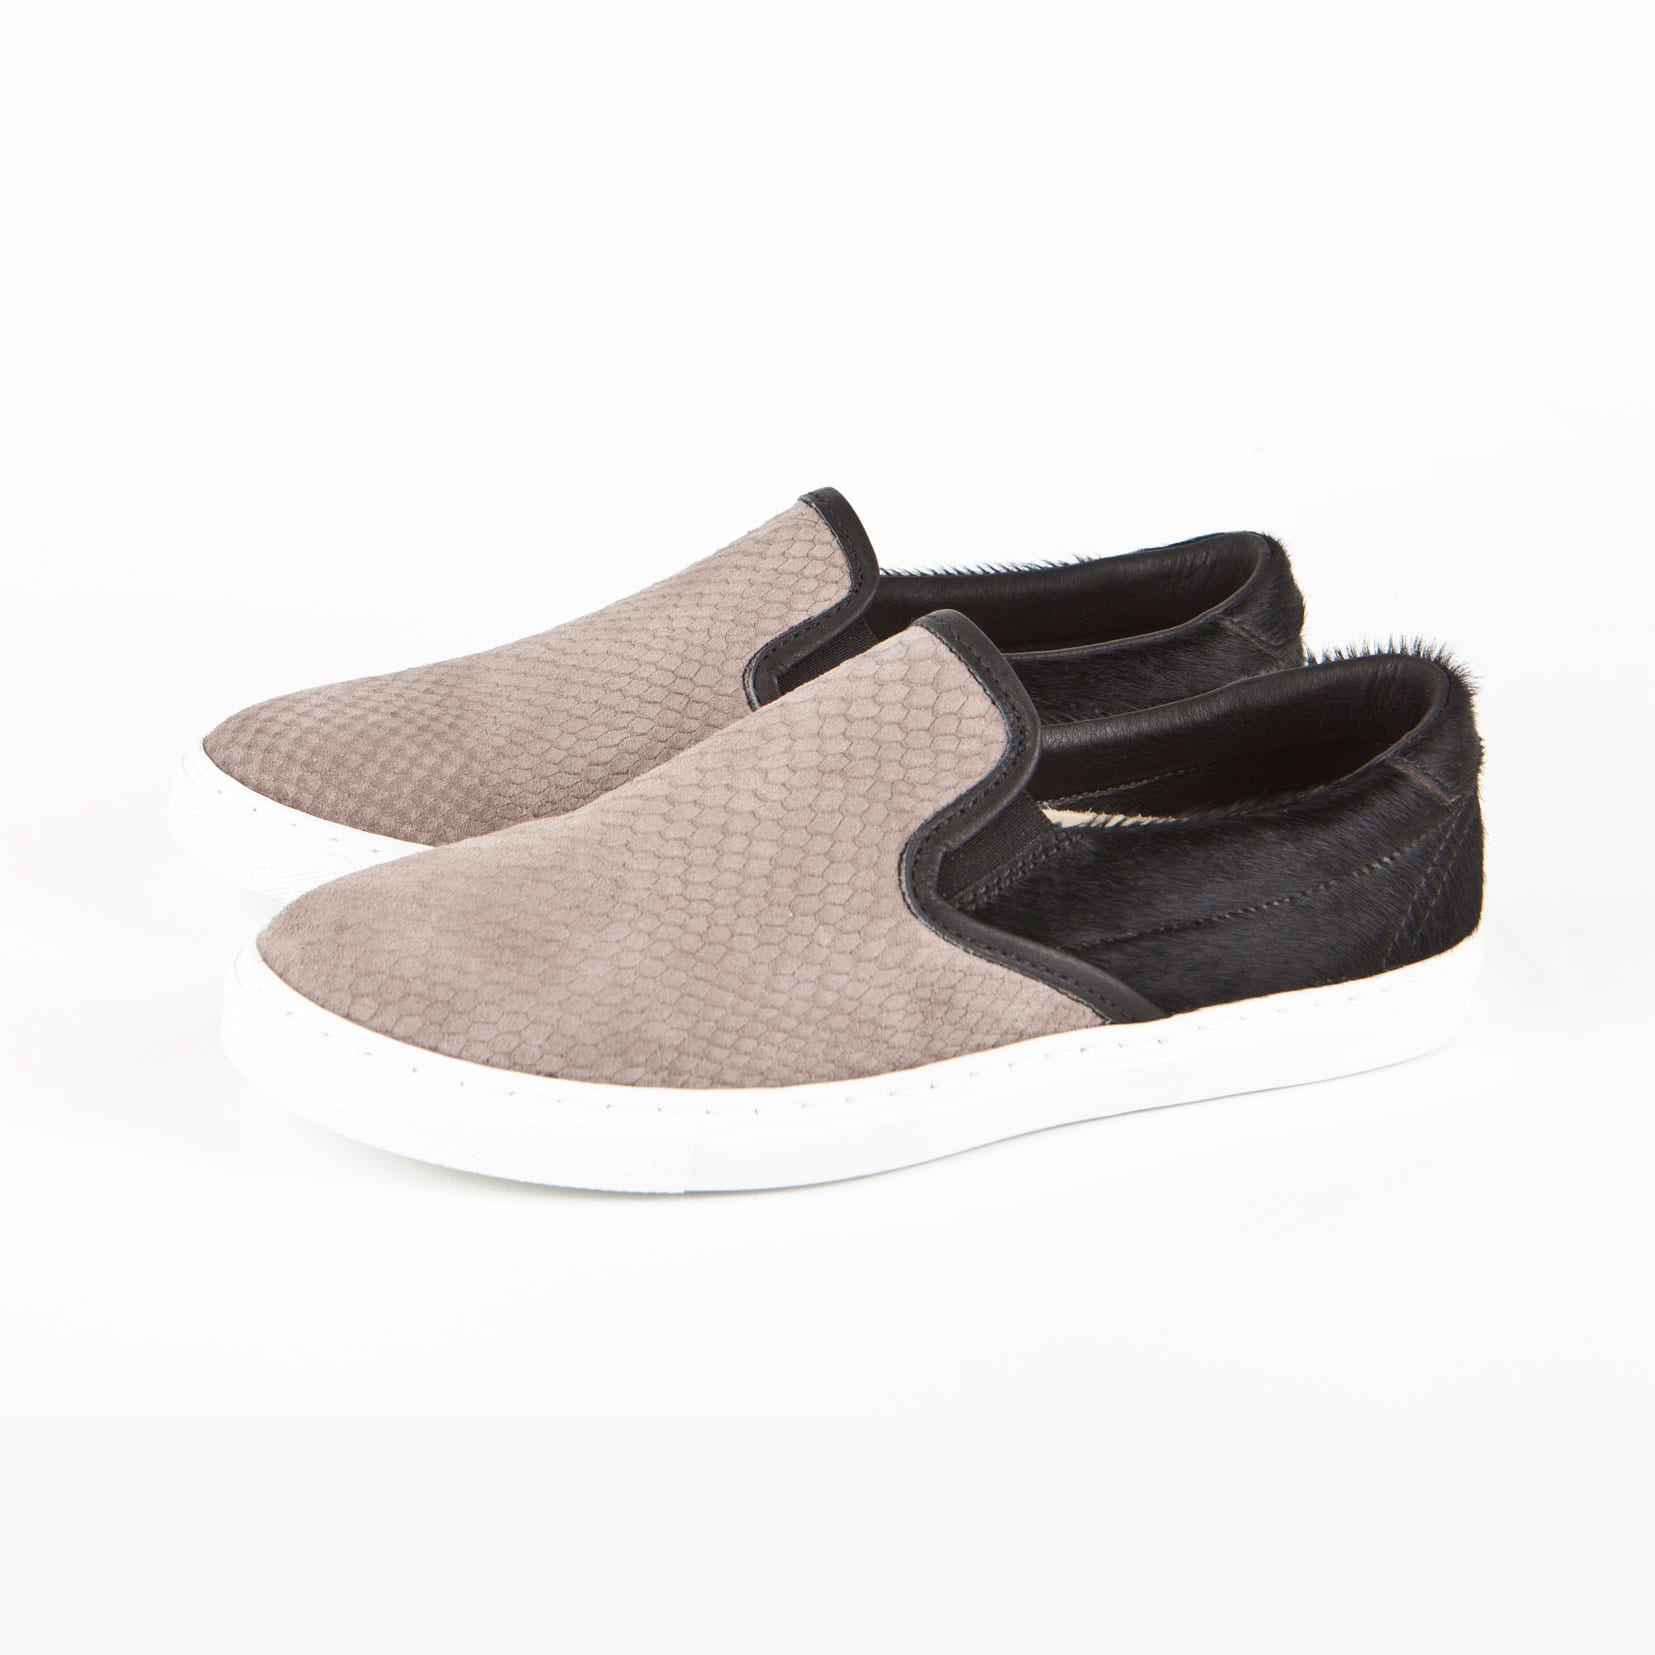 Diemme | Garde Slip-On Trainer | Taupe snake embossed suede, black haircalf leather & white rubber sole